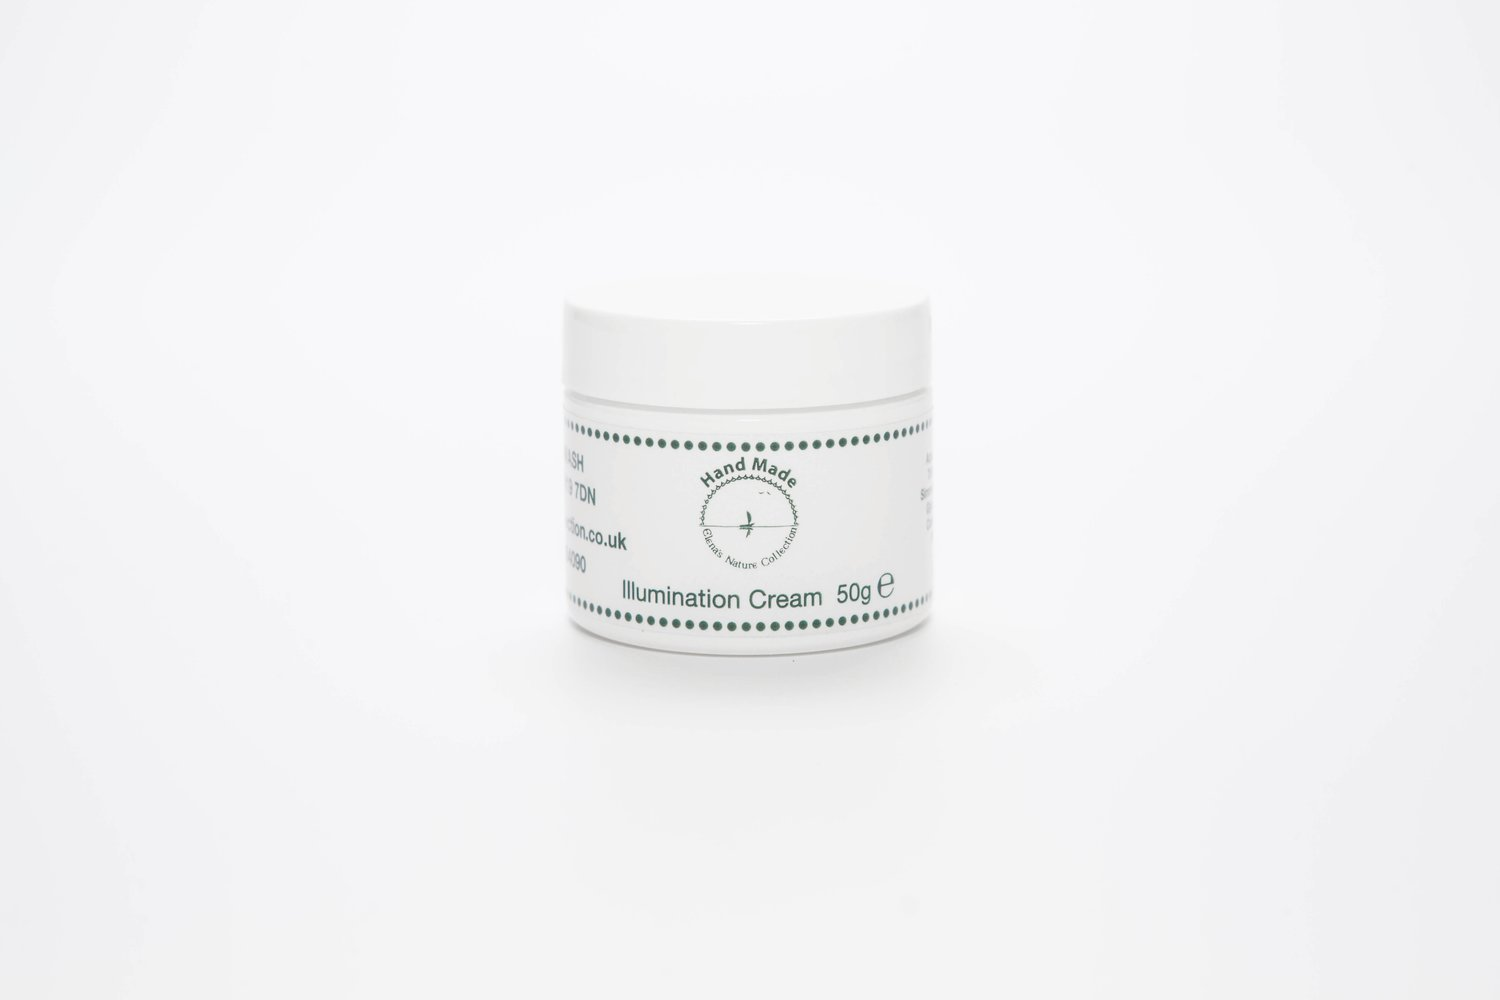 Illumination Cream 50g